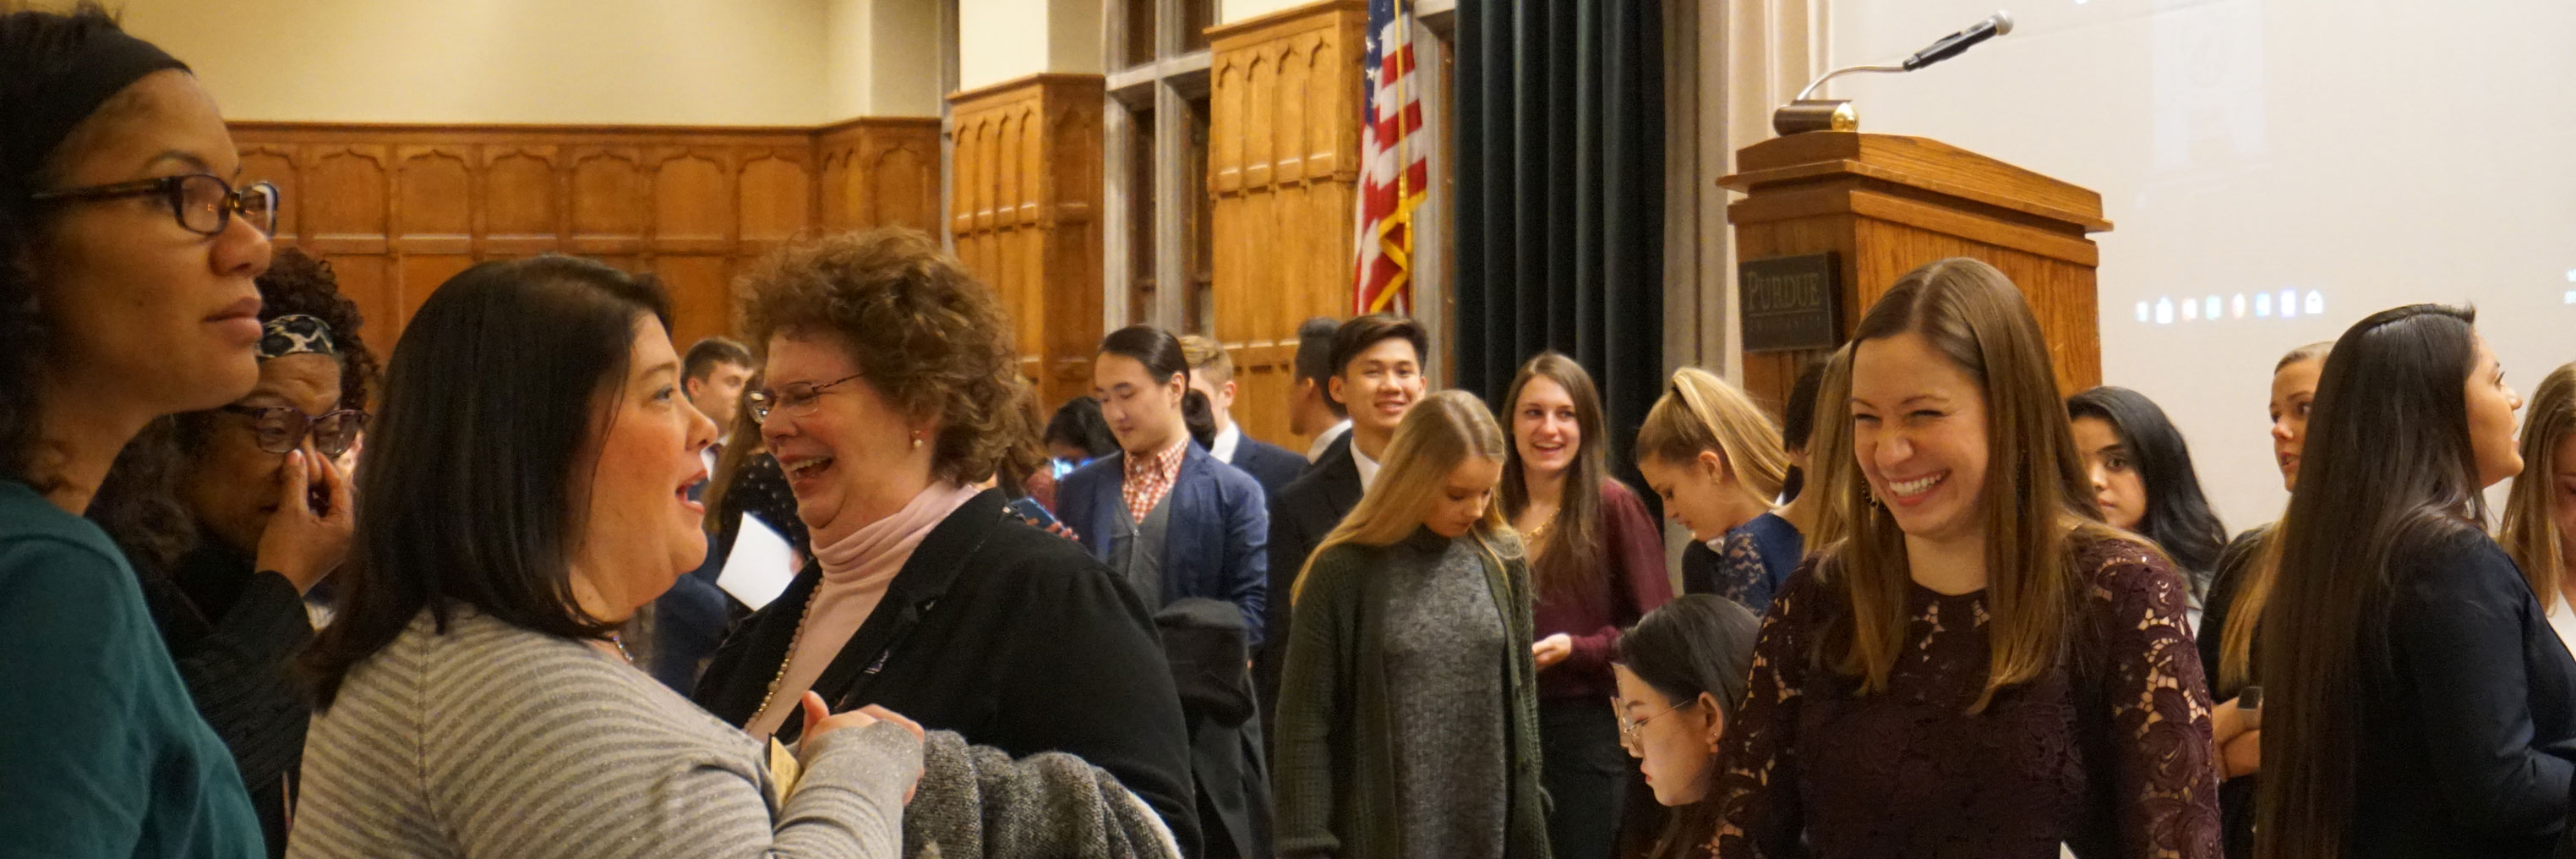 Student enjoying the Dean's Academic Recognition Reception